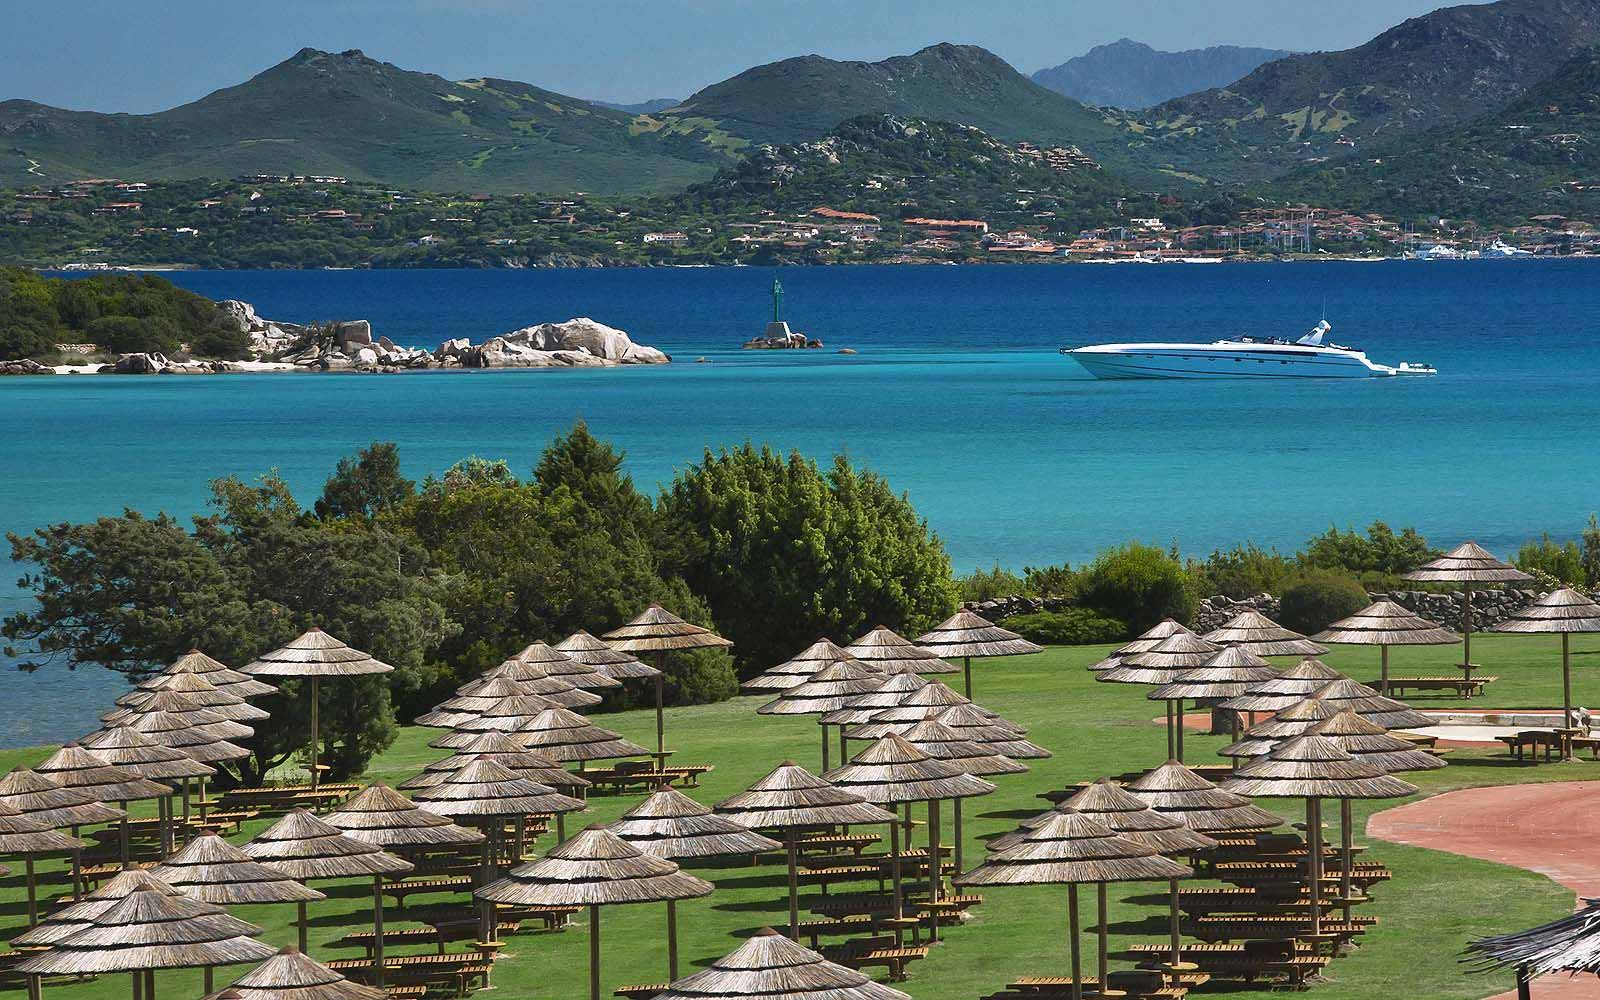 Grounds of the Hotel Cala di Volpe